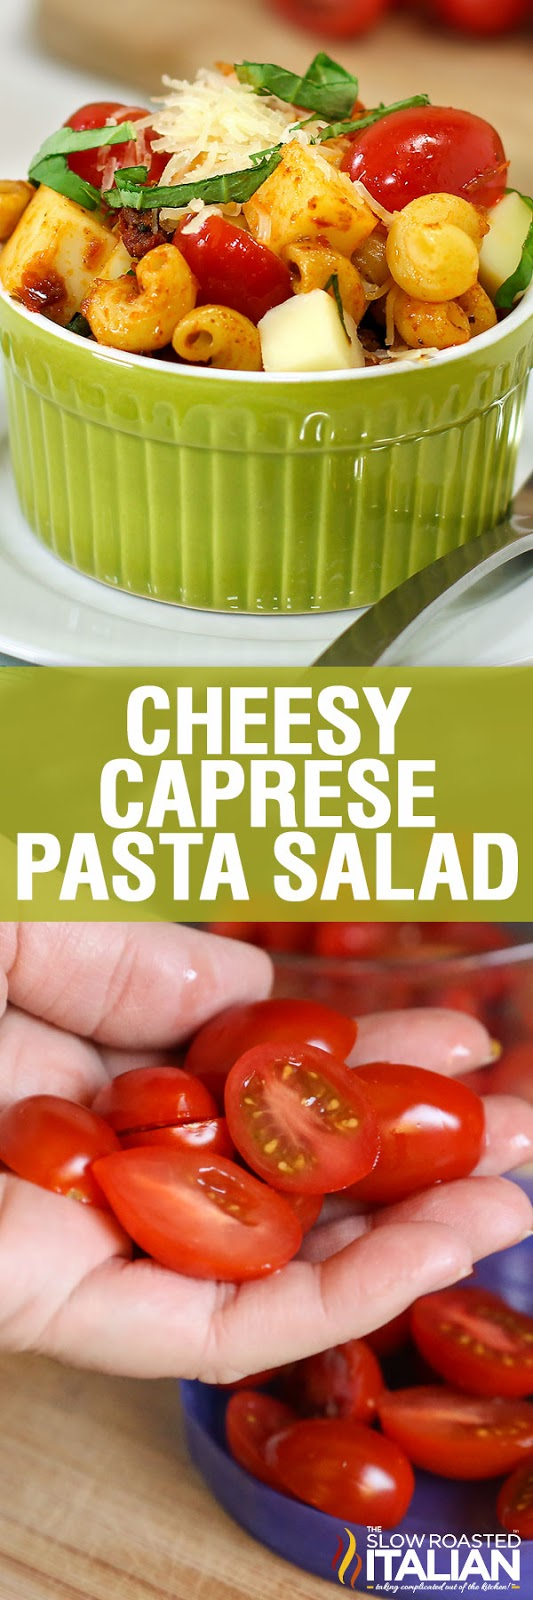 http://www.theslowroasteditalian.com/2013/04/cheesy-caprese-pasta-in-just-20-minutes.html